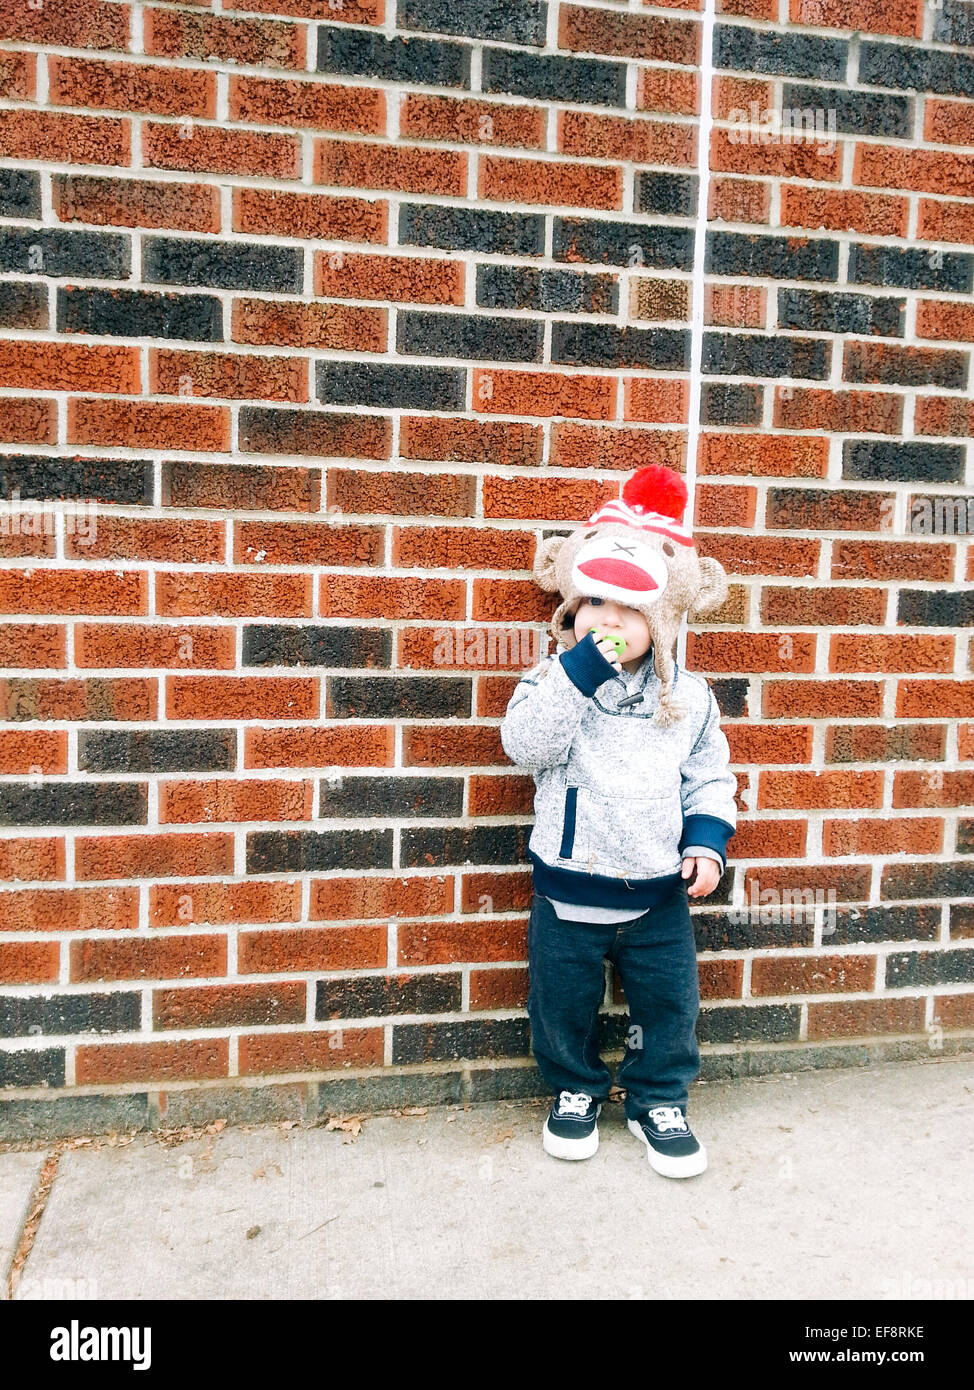 Boy leaning against brick wall Photo Stock